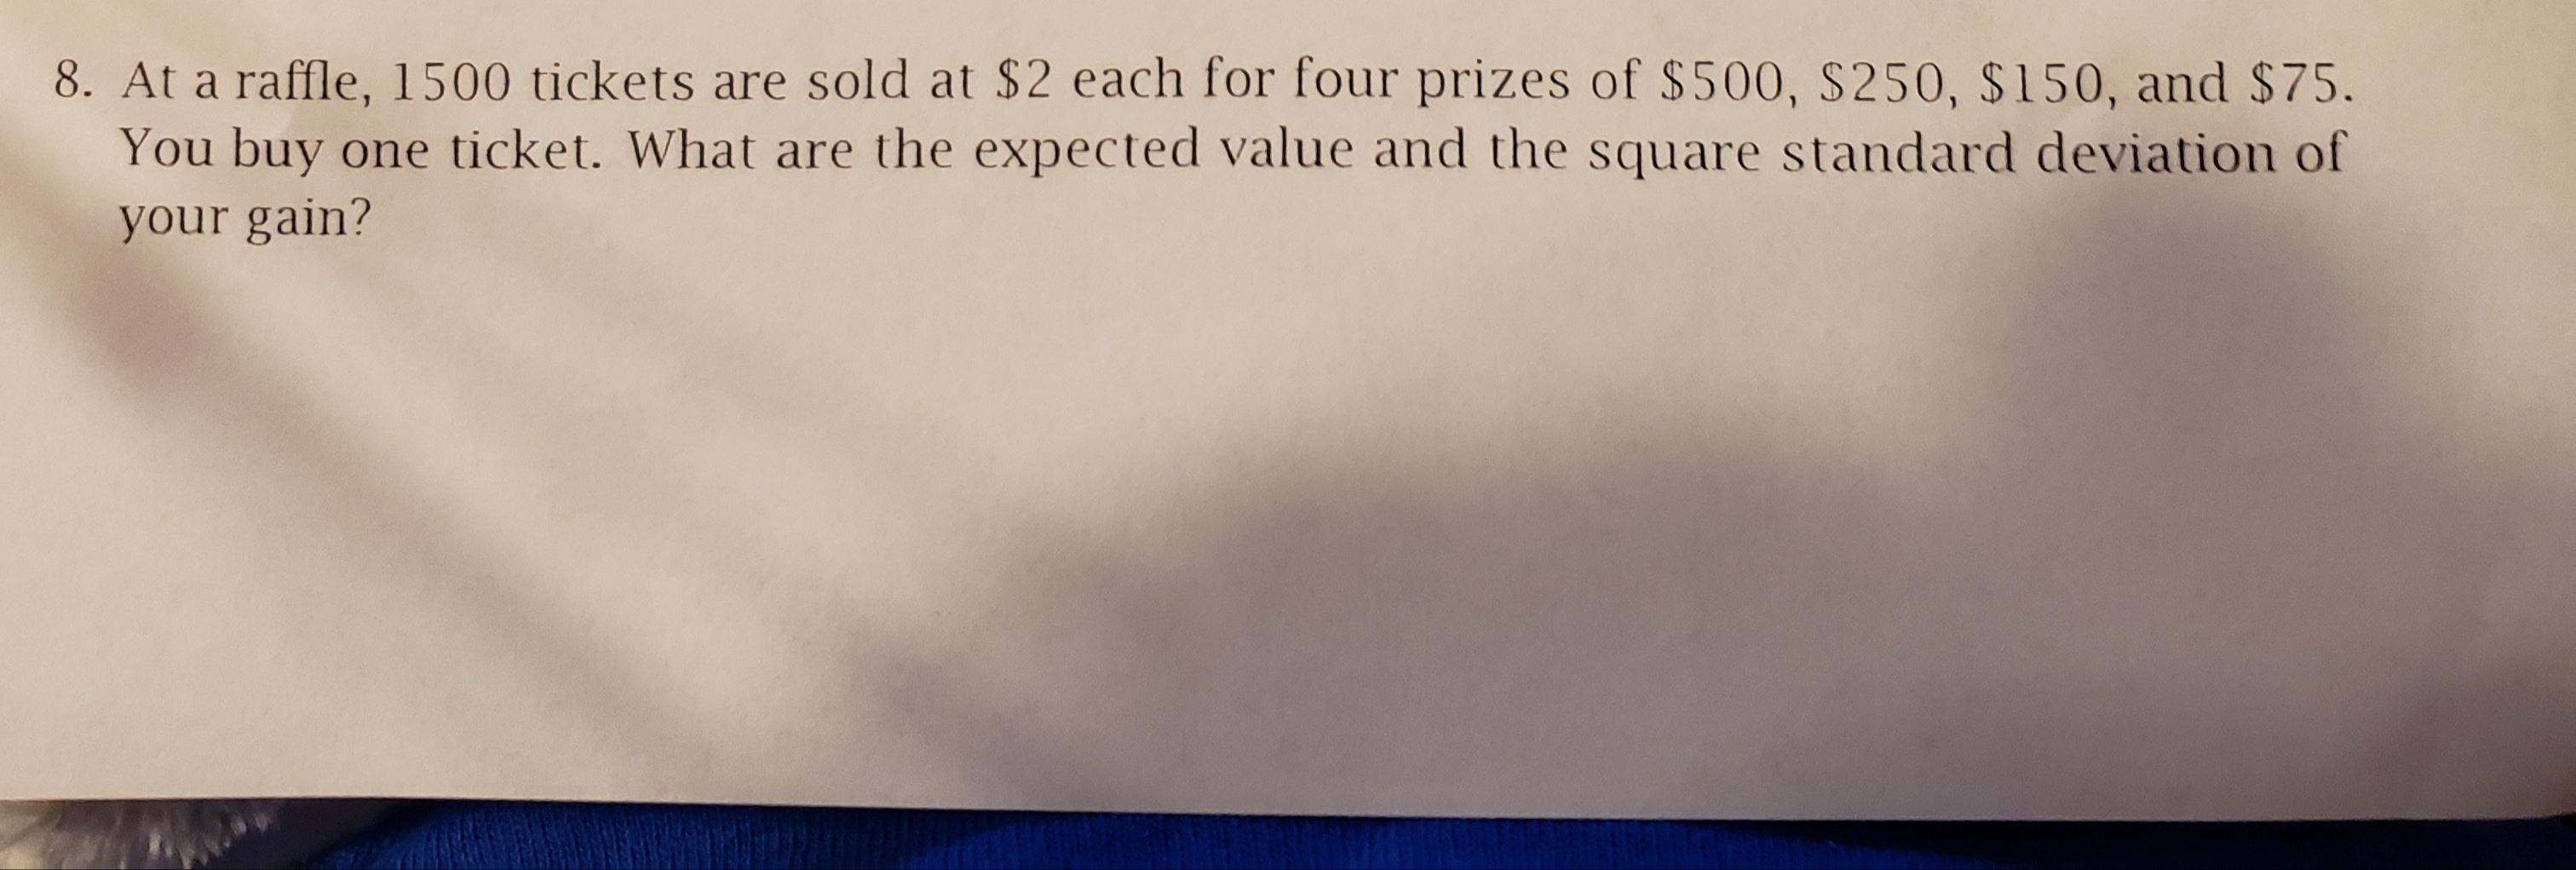 8. At a raffle, 1500 tickets are sold at $2 each for four prizes of $500, S250, $150, and $75. You buy one ticket. What are the expected value and the square standard deviation of your gain?